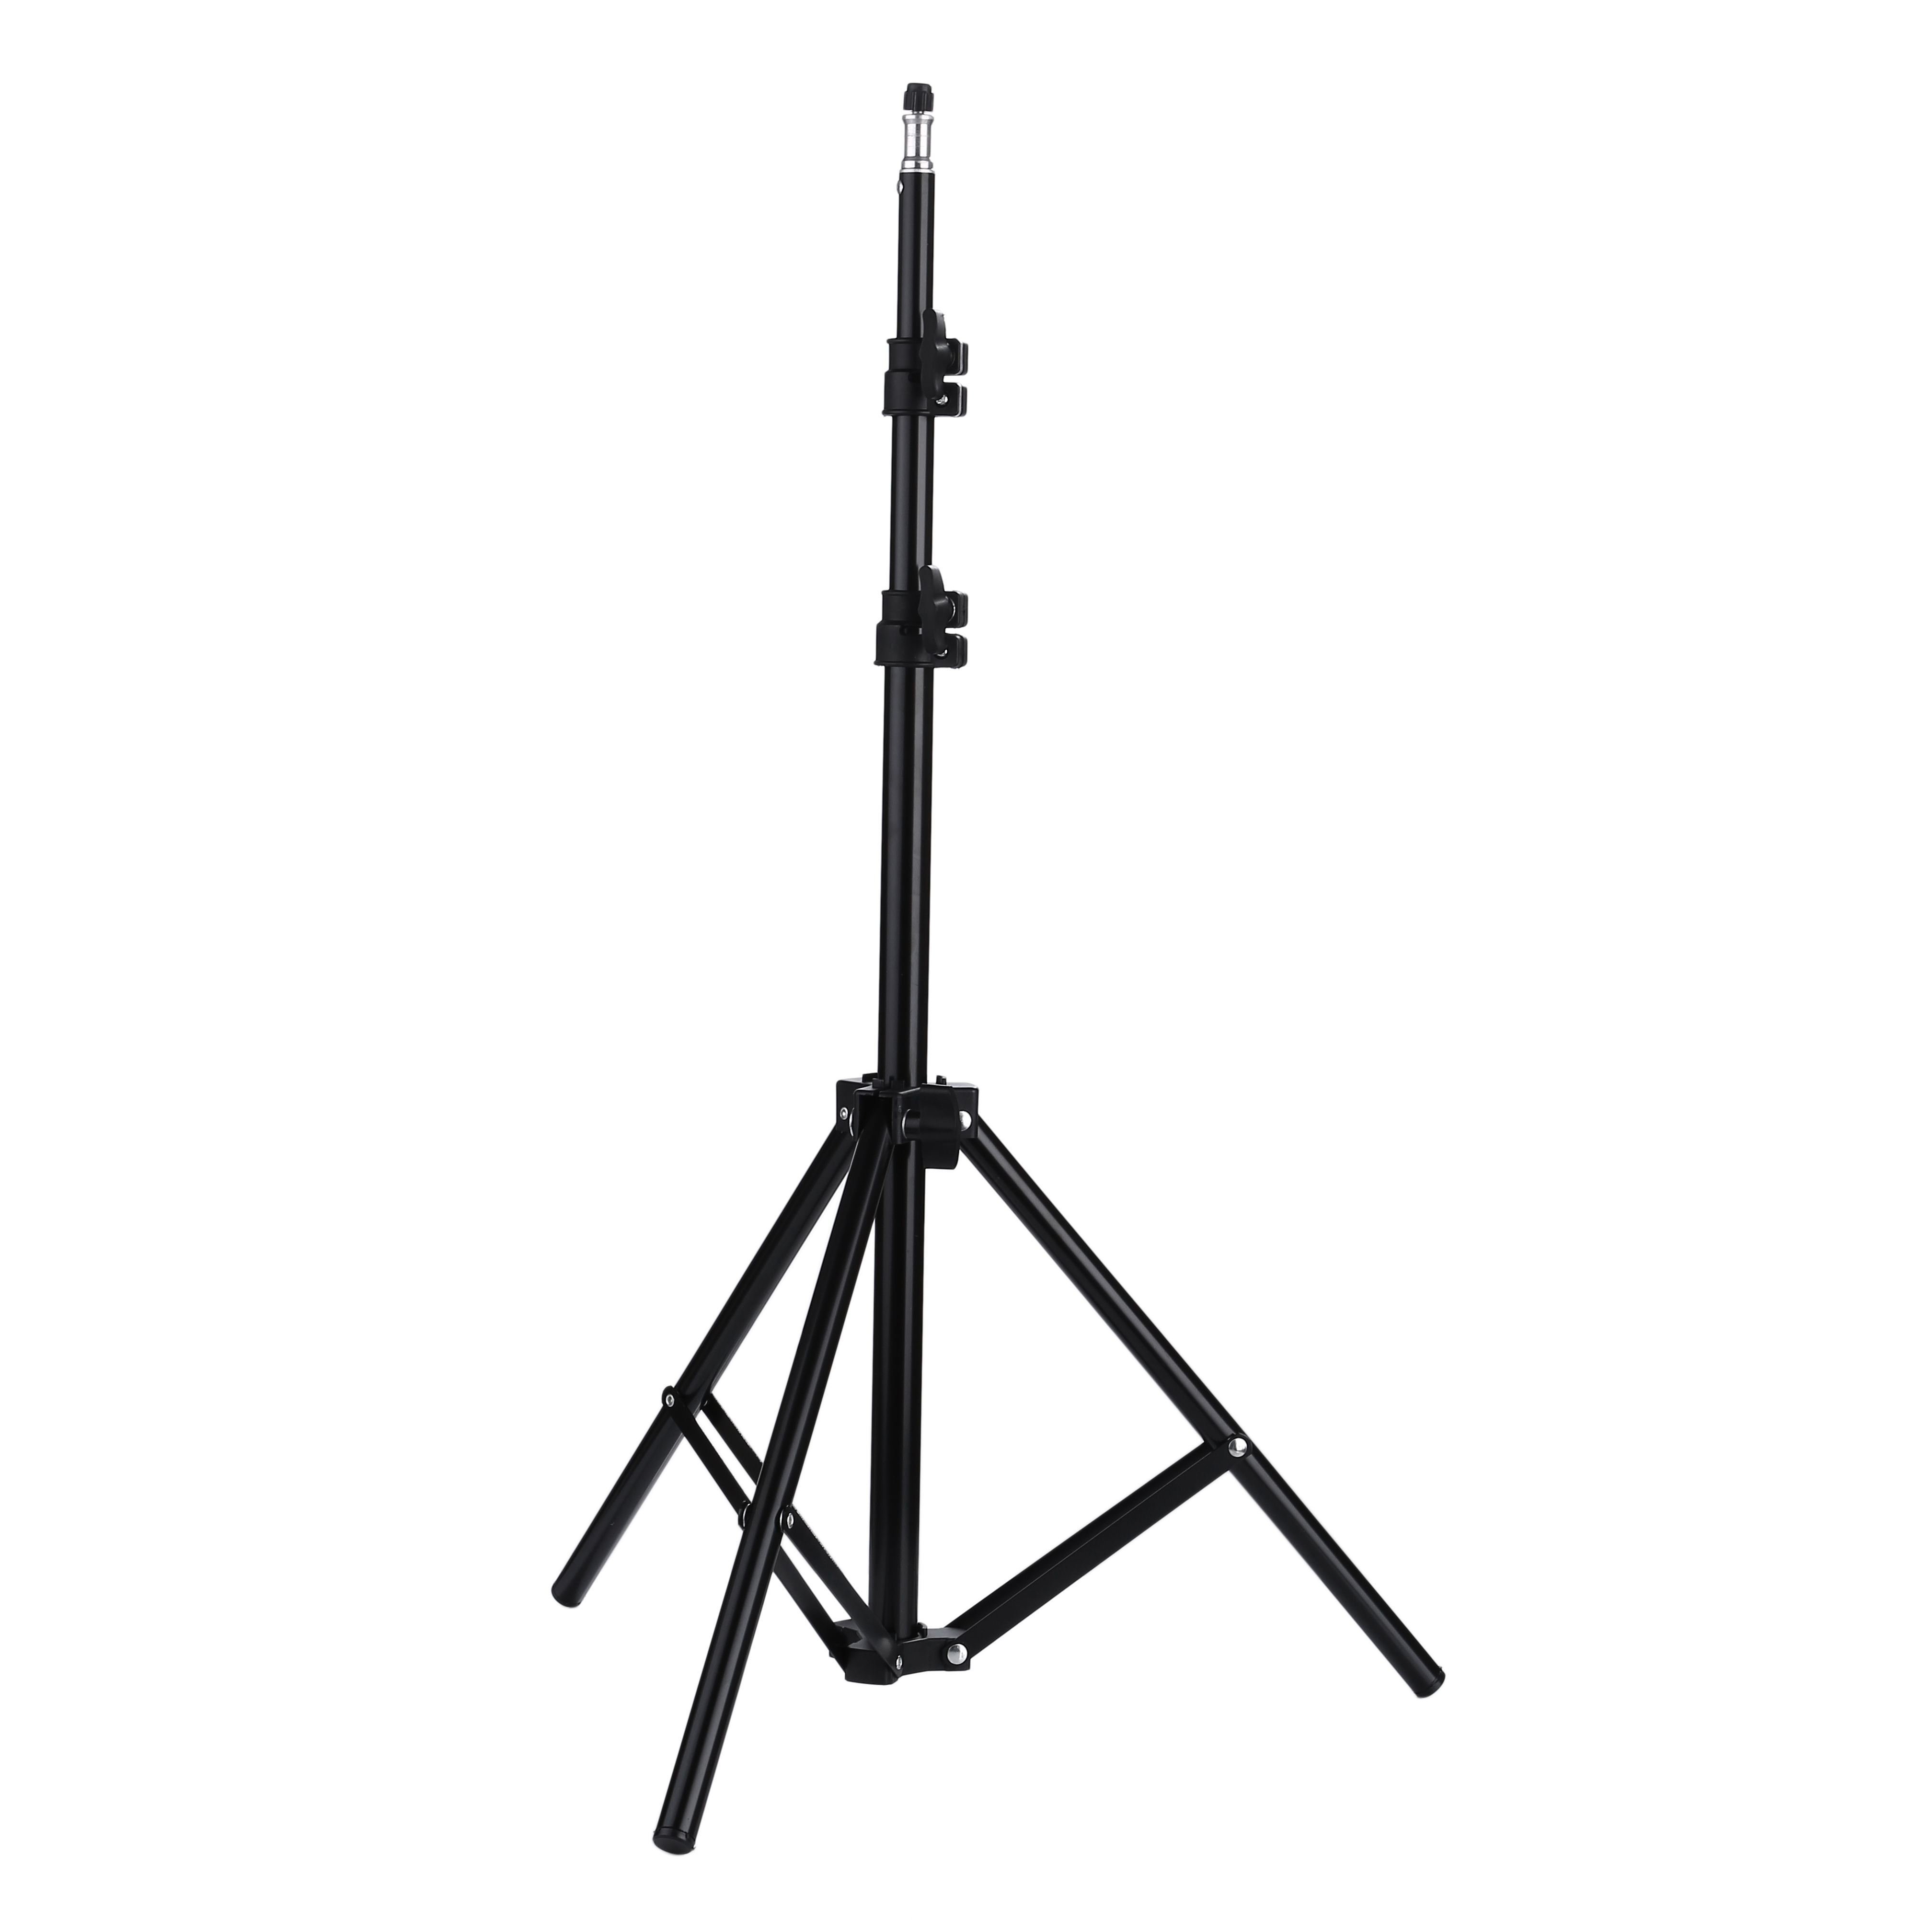 Tripod Softbox Light-Stand Camera Studio Adjustable Photo with 1/4 Screw-Head-63inch title=